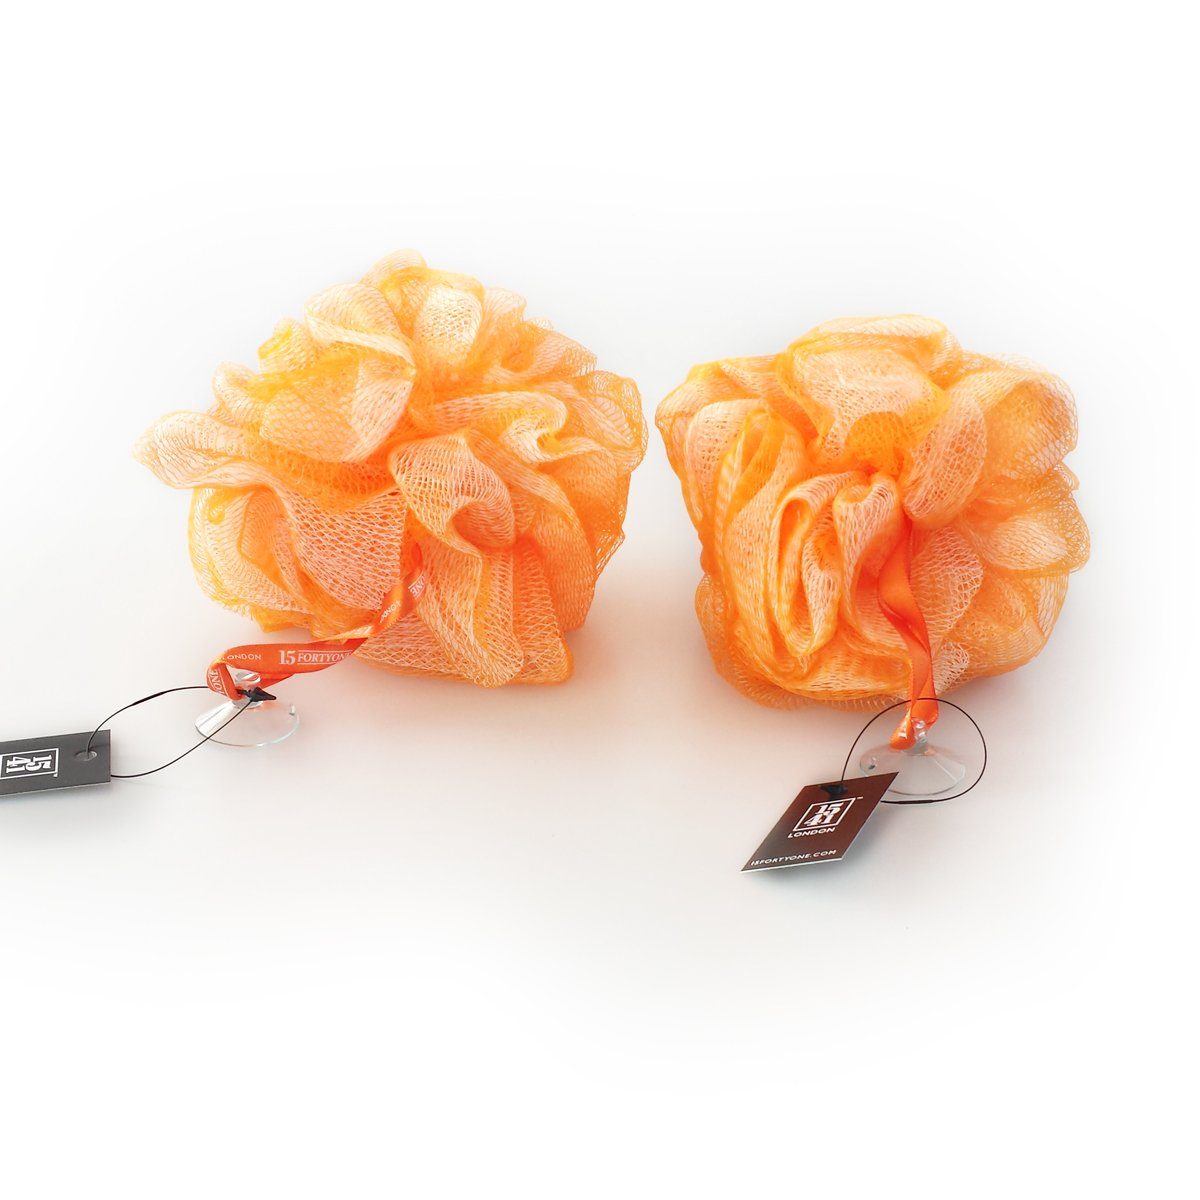 1541 London Exfoliating Bath & Shower Body Puff / Scrunchie / Buffer TWIN PACK (Tangerine Orange)